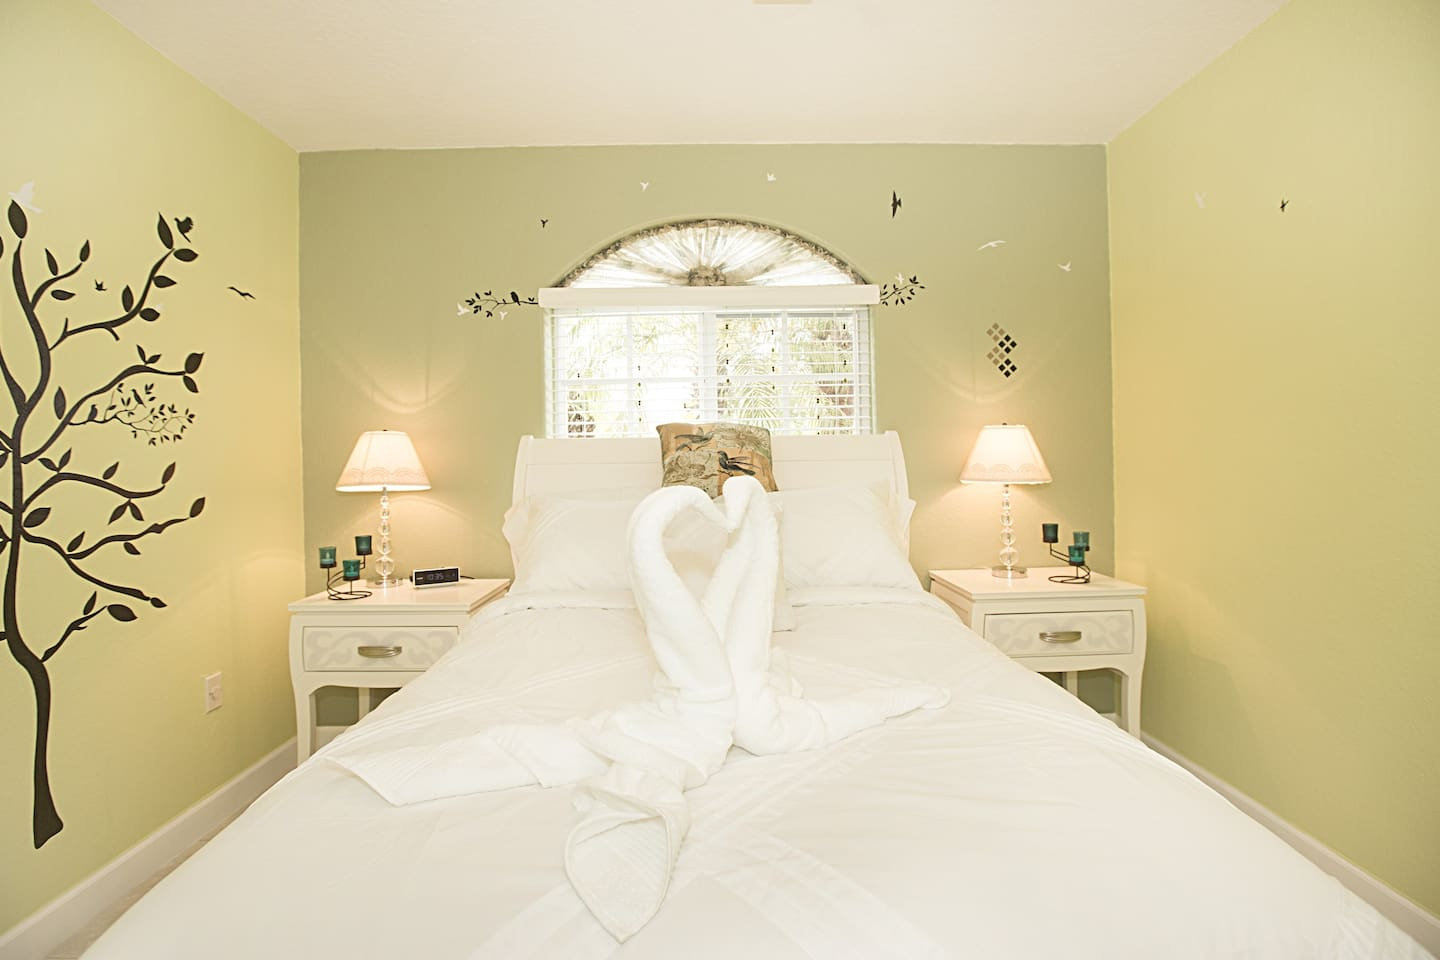 This beautiful bed room in Miami is waiting for you.